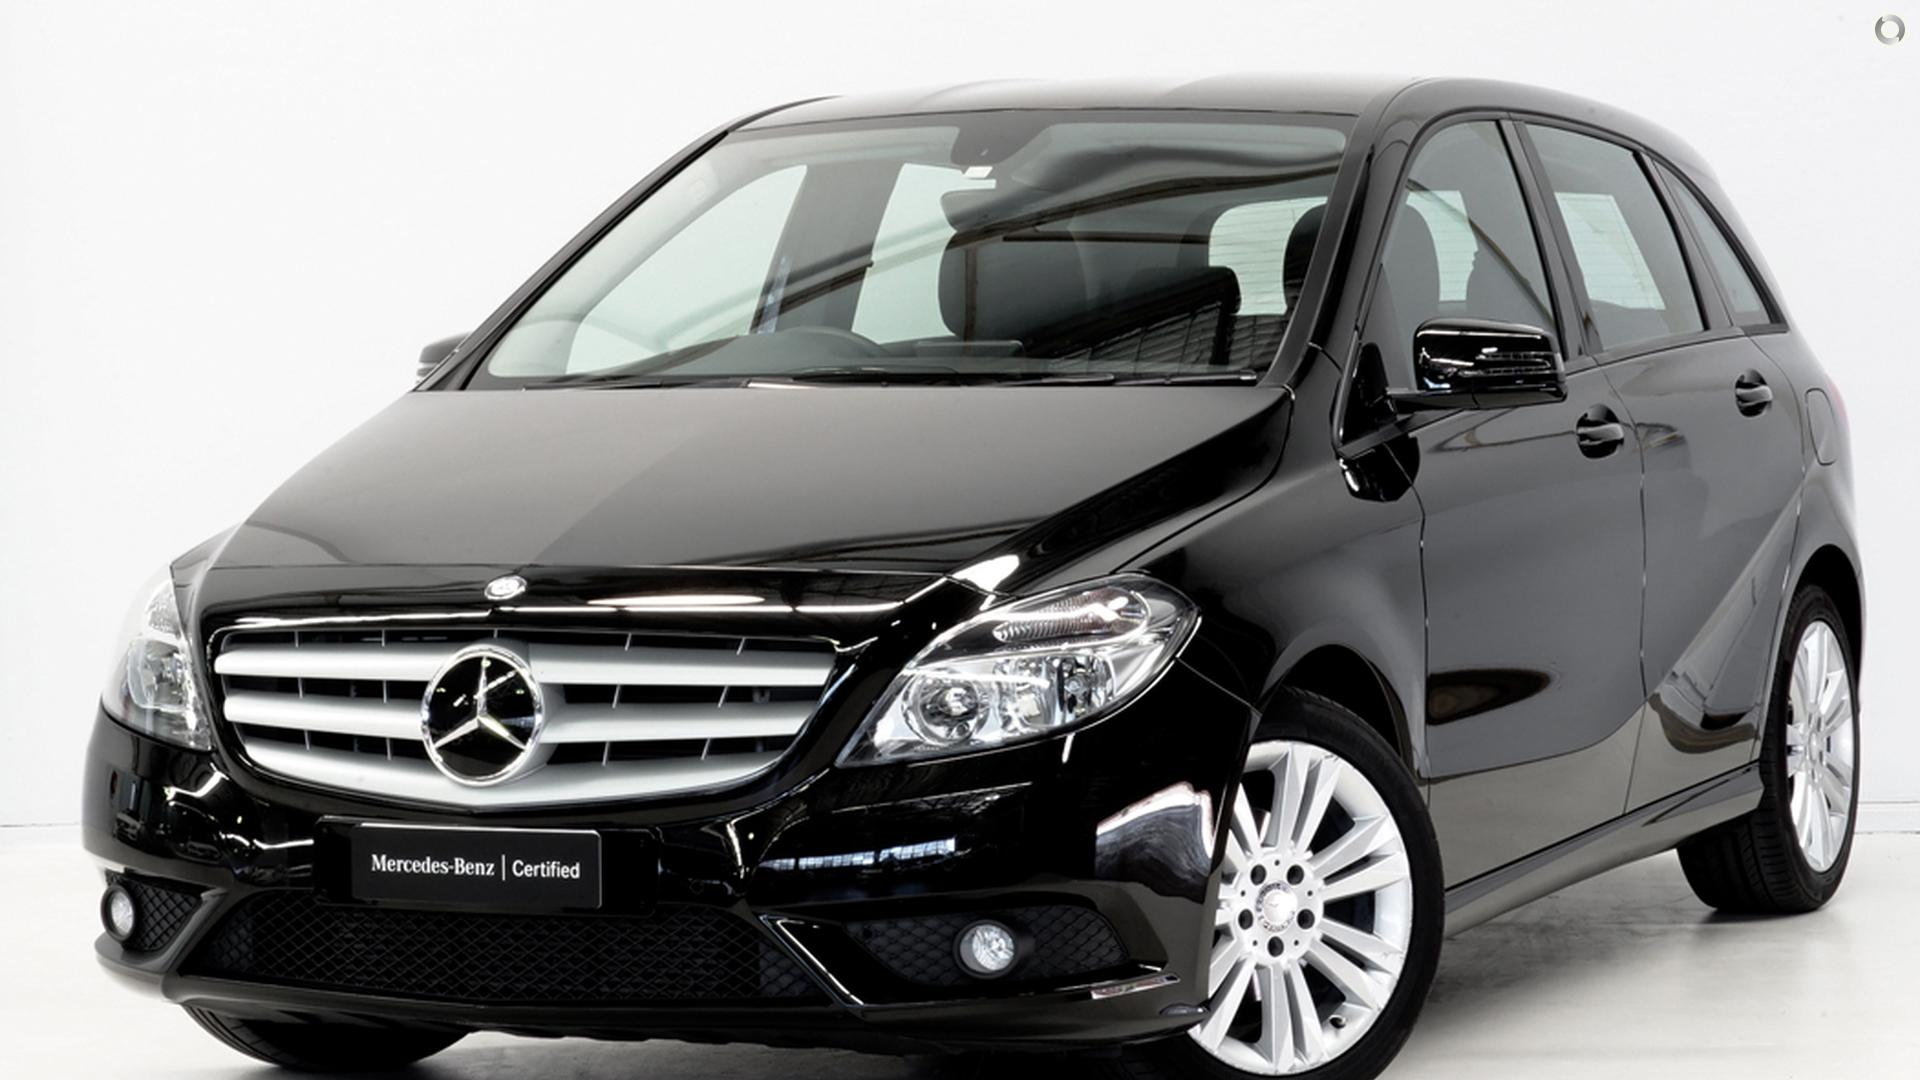 2013 Mercedes-Benz B 180 Hatch